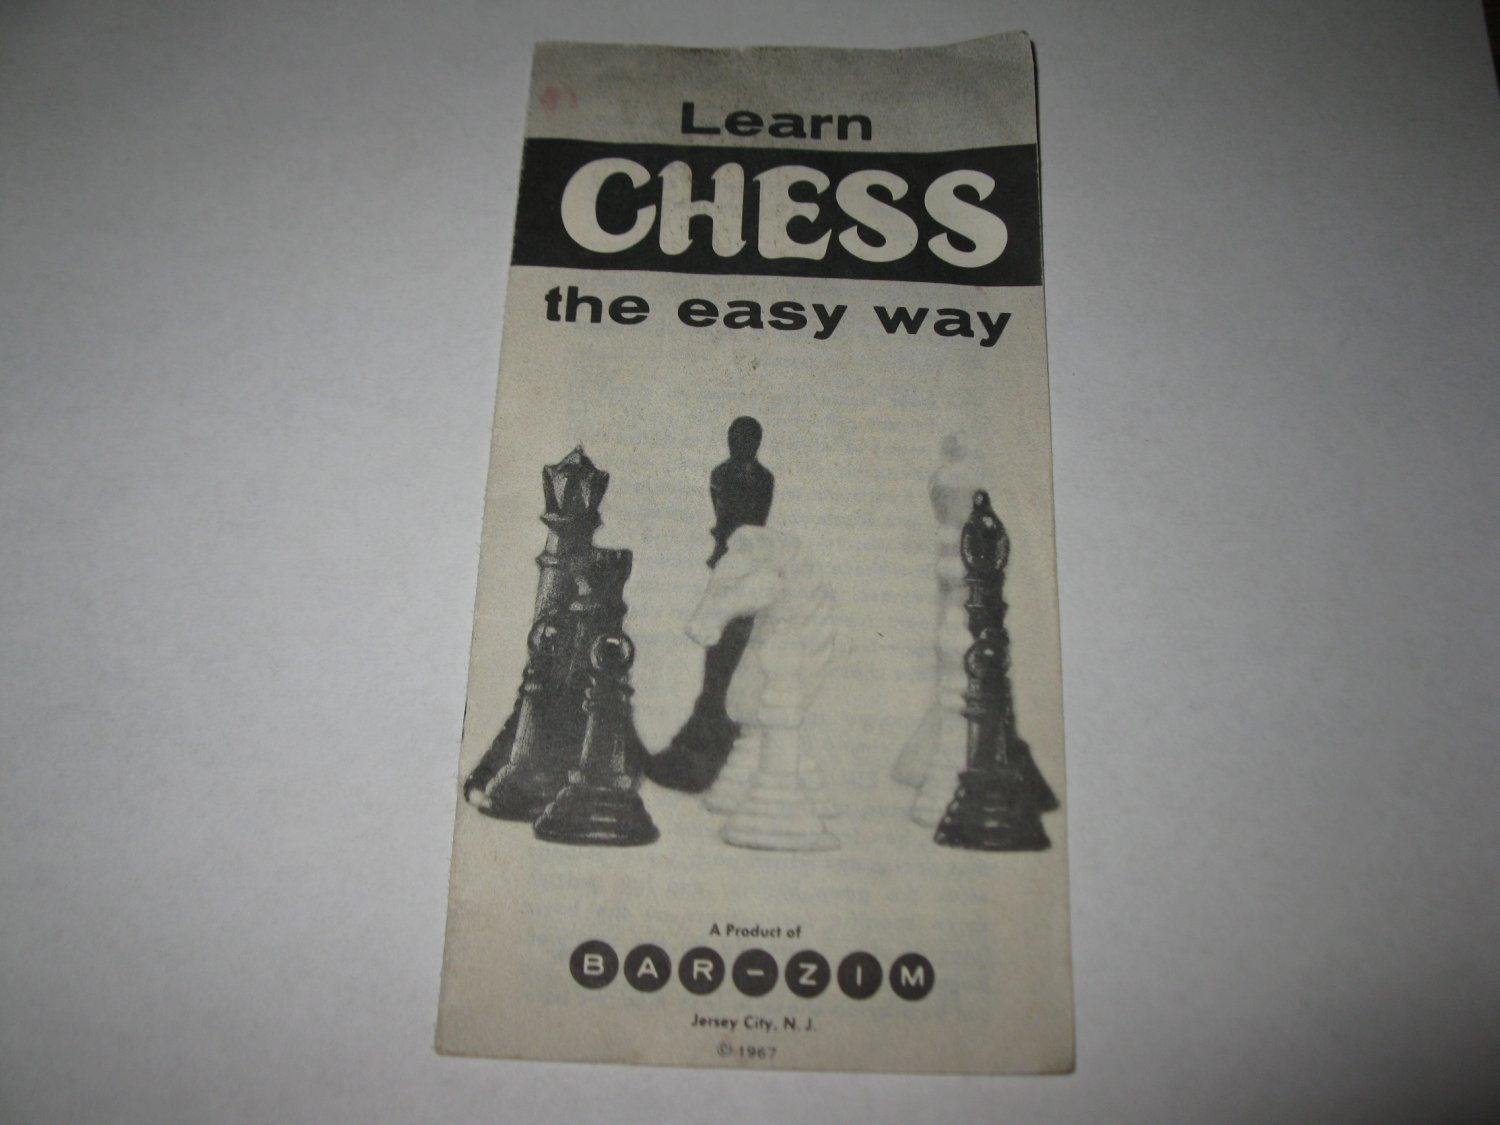 1967 Bar-Zim Classic Chess Board Game Piece: Instruction Booklet